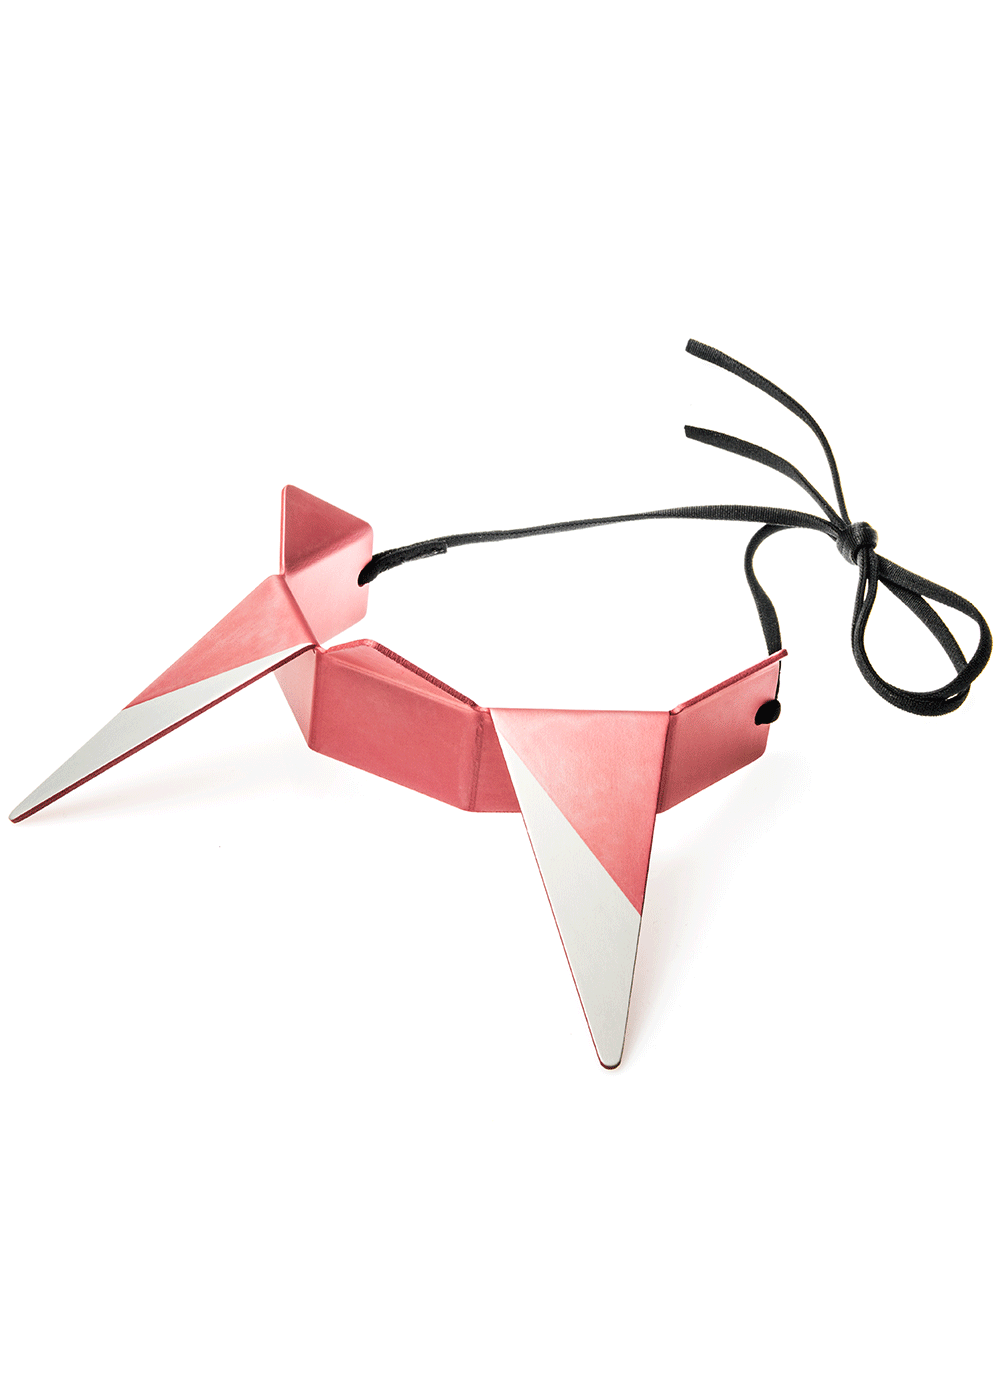 prong neck, pink / silver